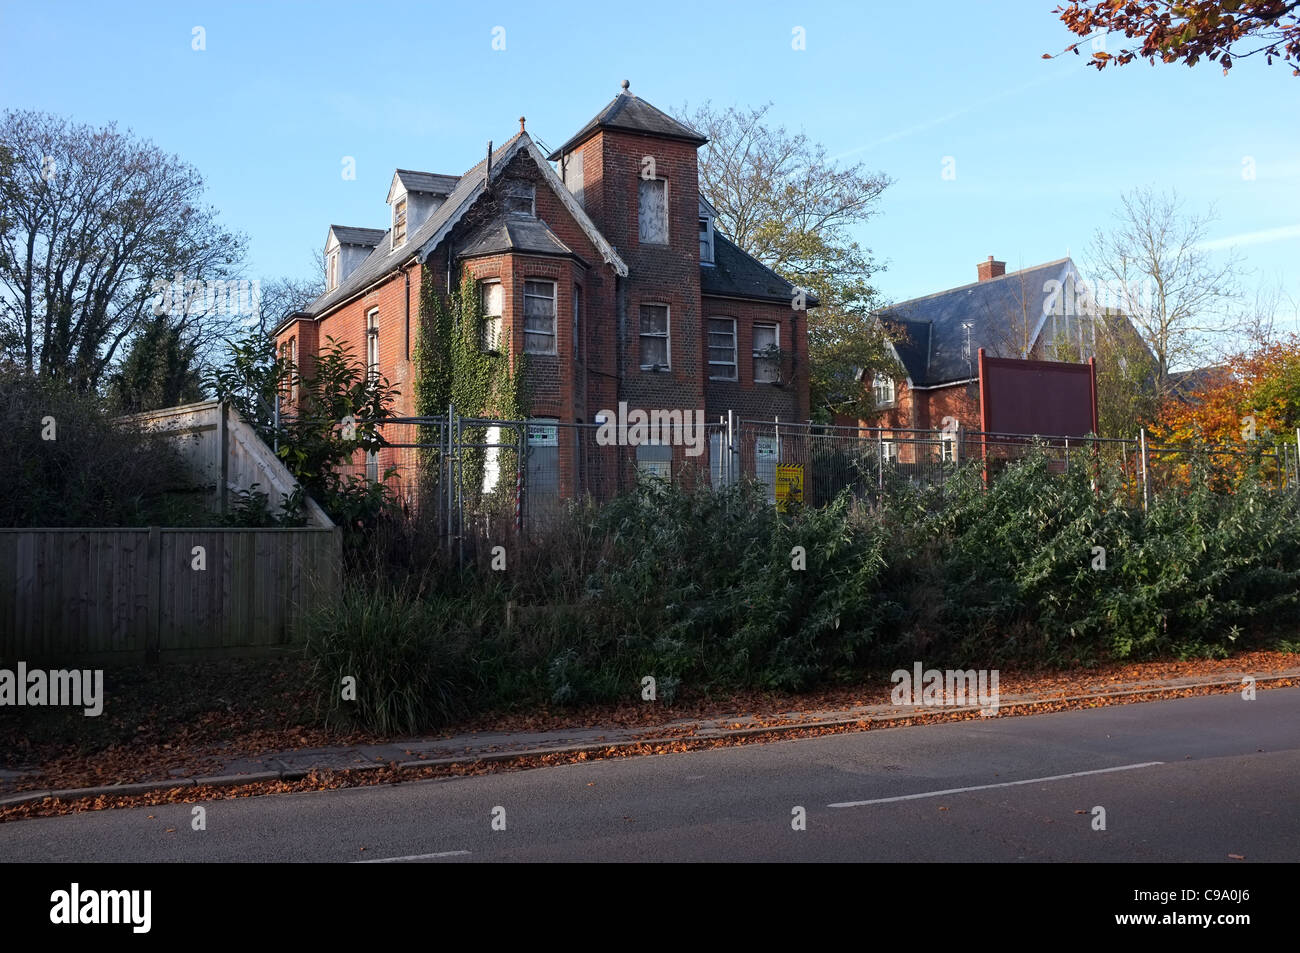 A  Run down derelict house in winchester UK ready for development - Stock Image